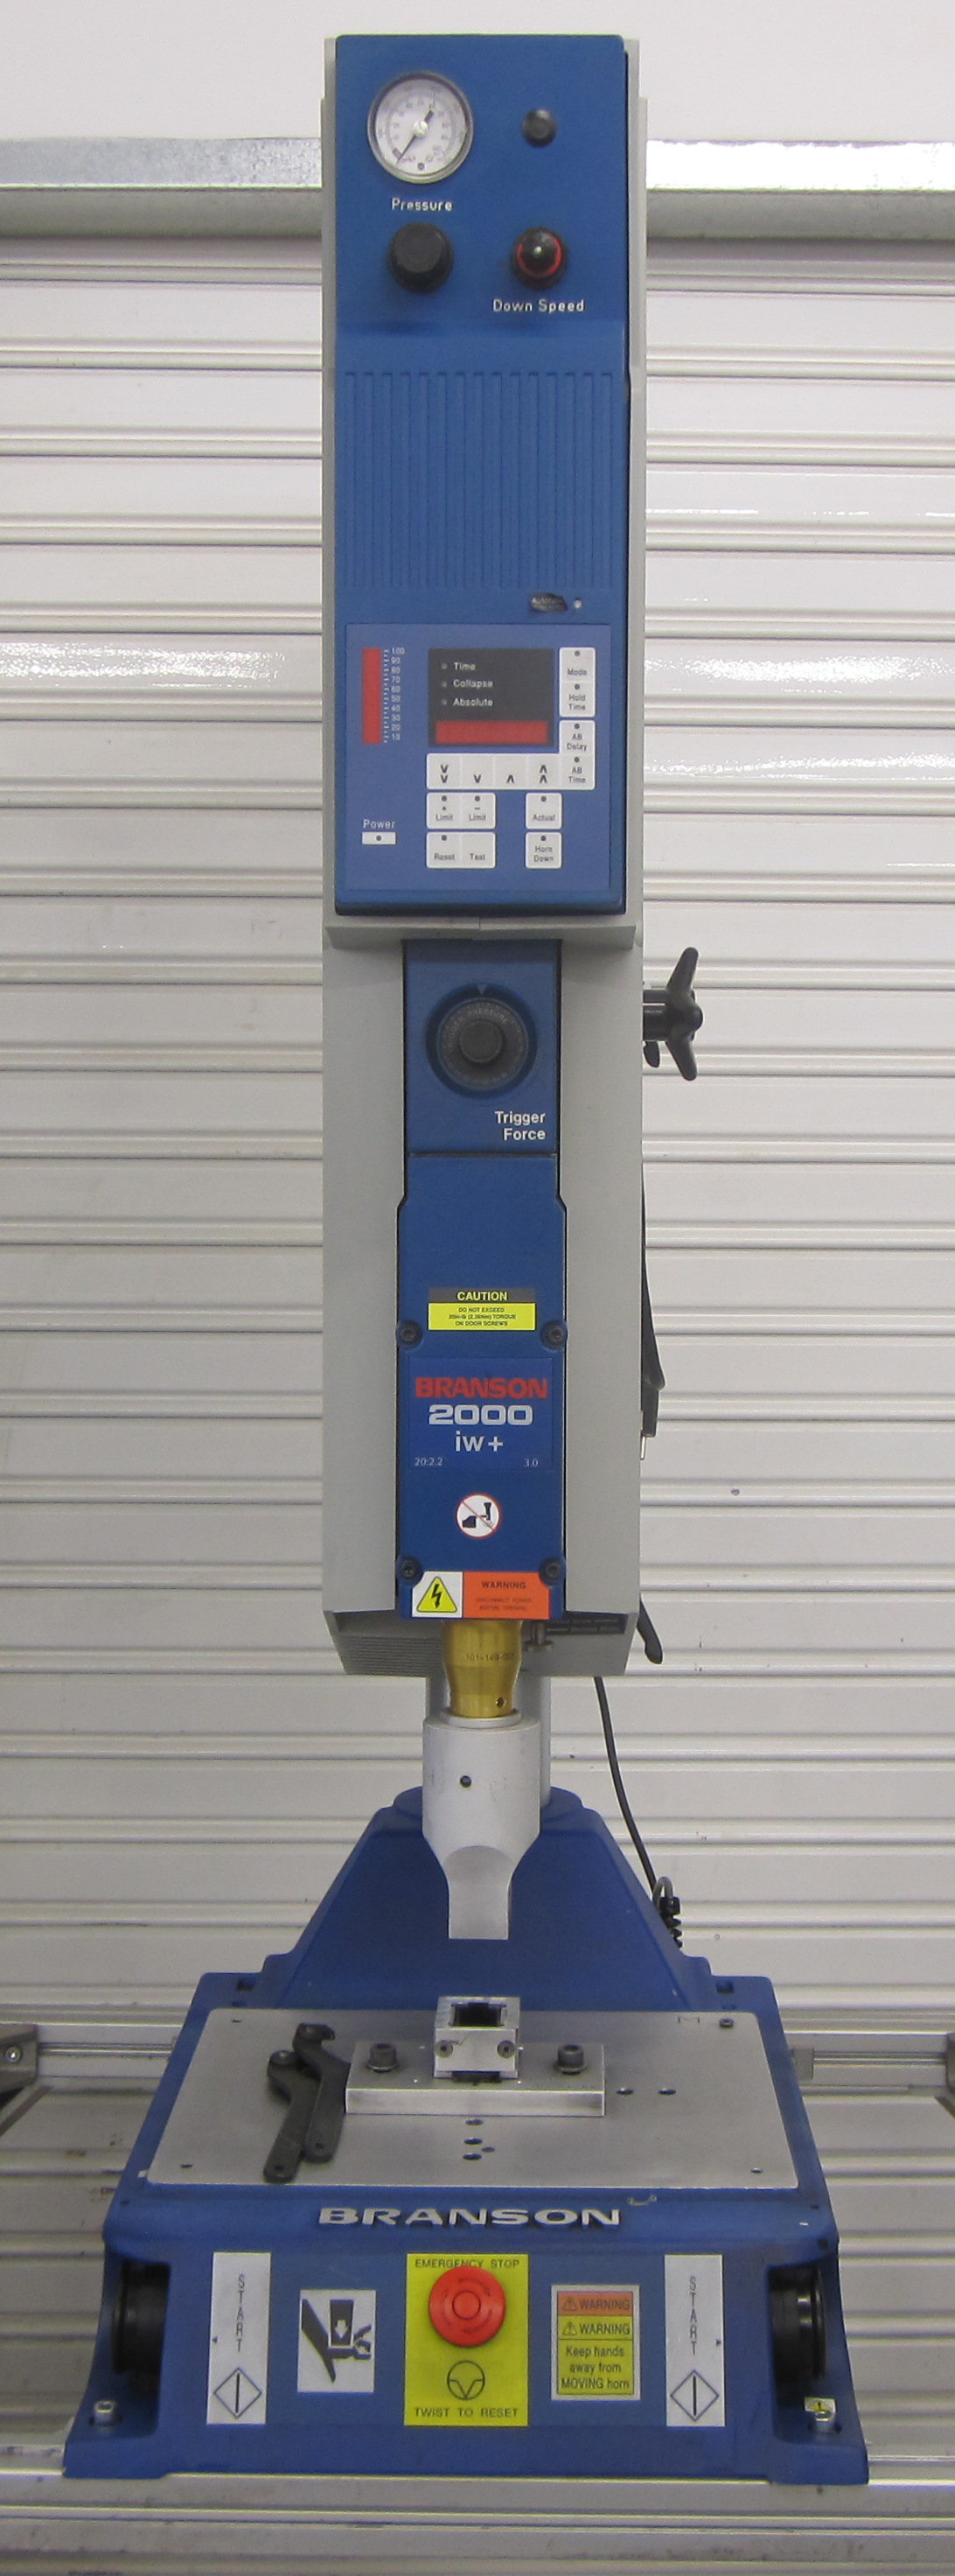 Branson 2000 Iw Plastic Welding Machine By Ultrasound